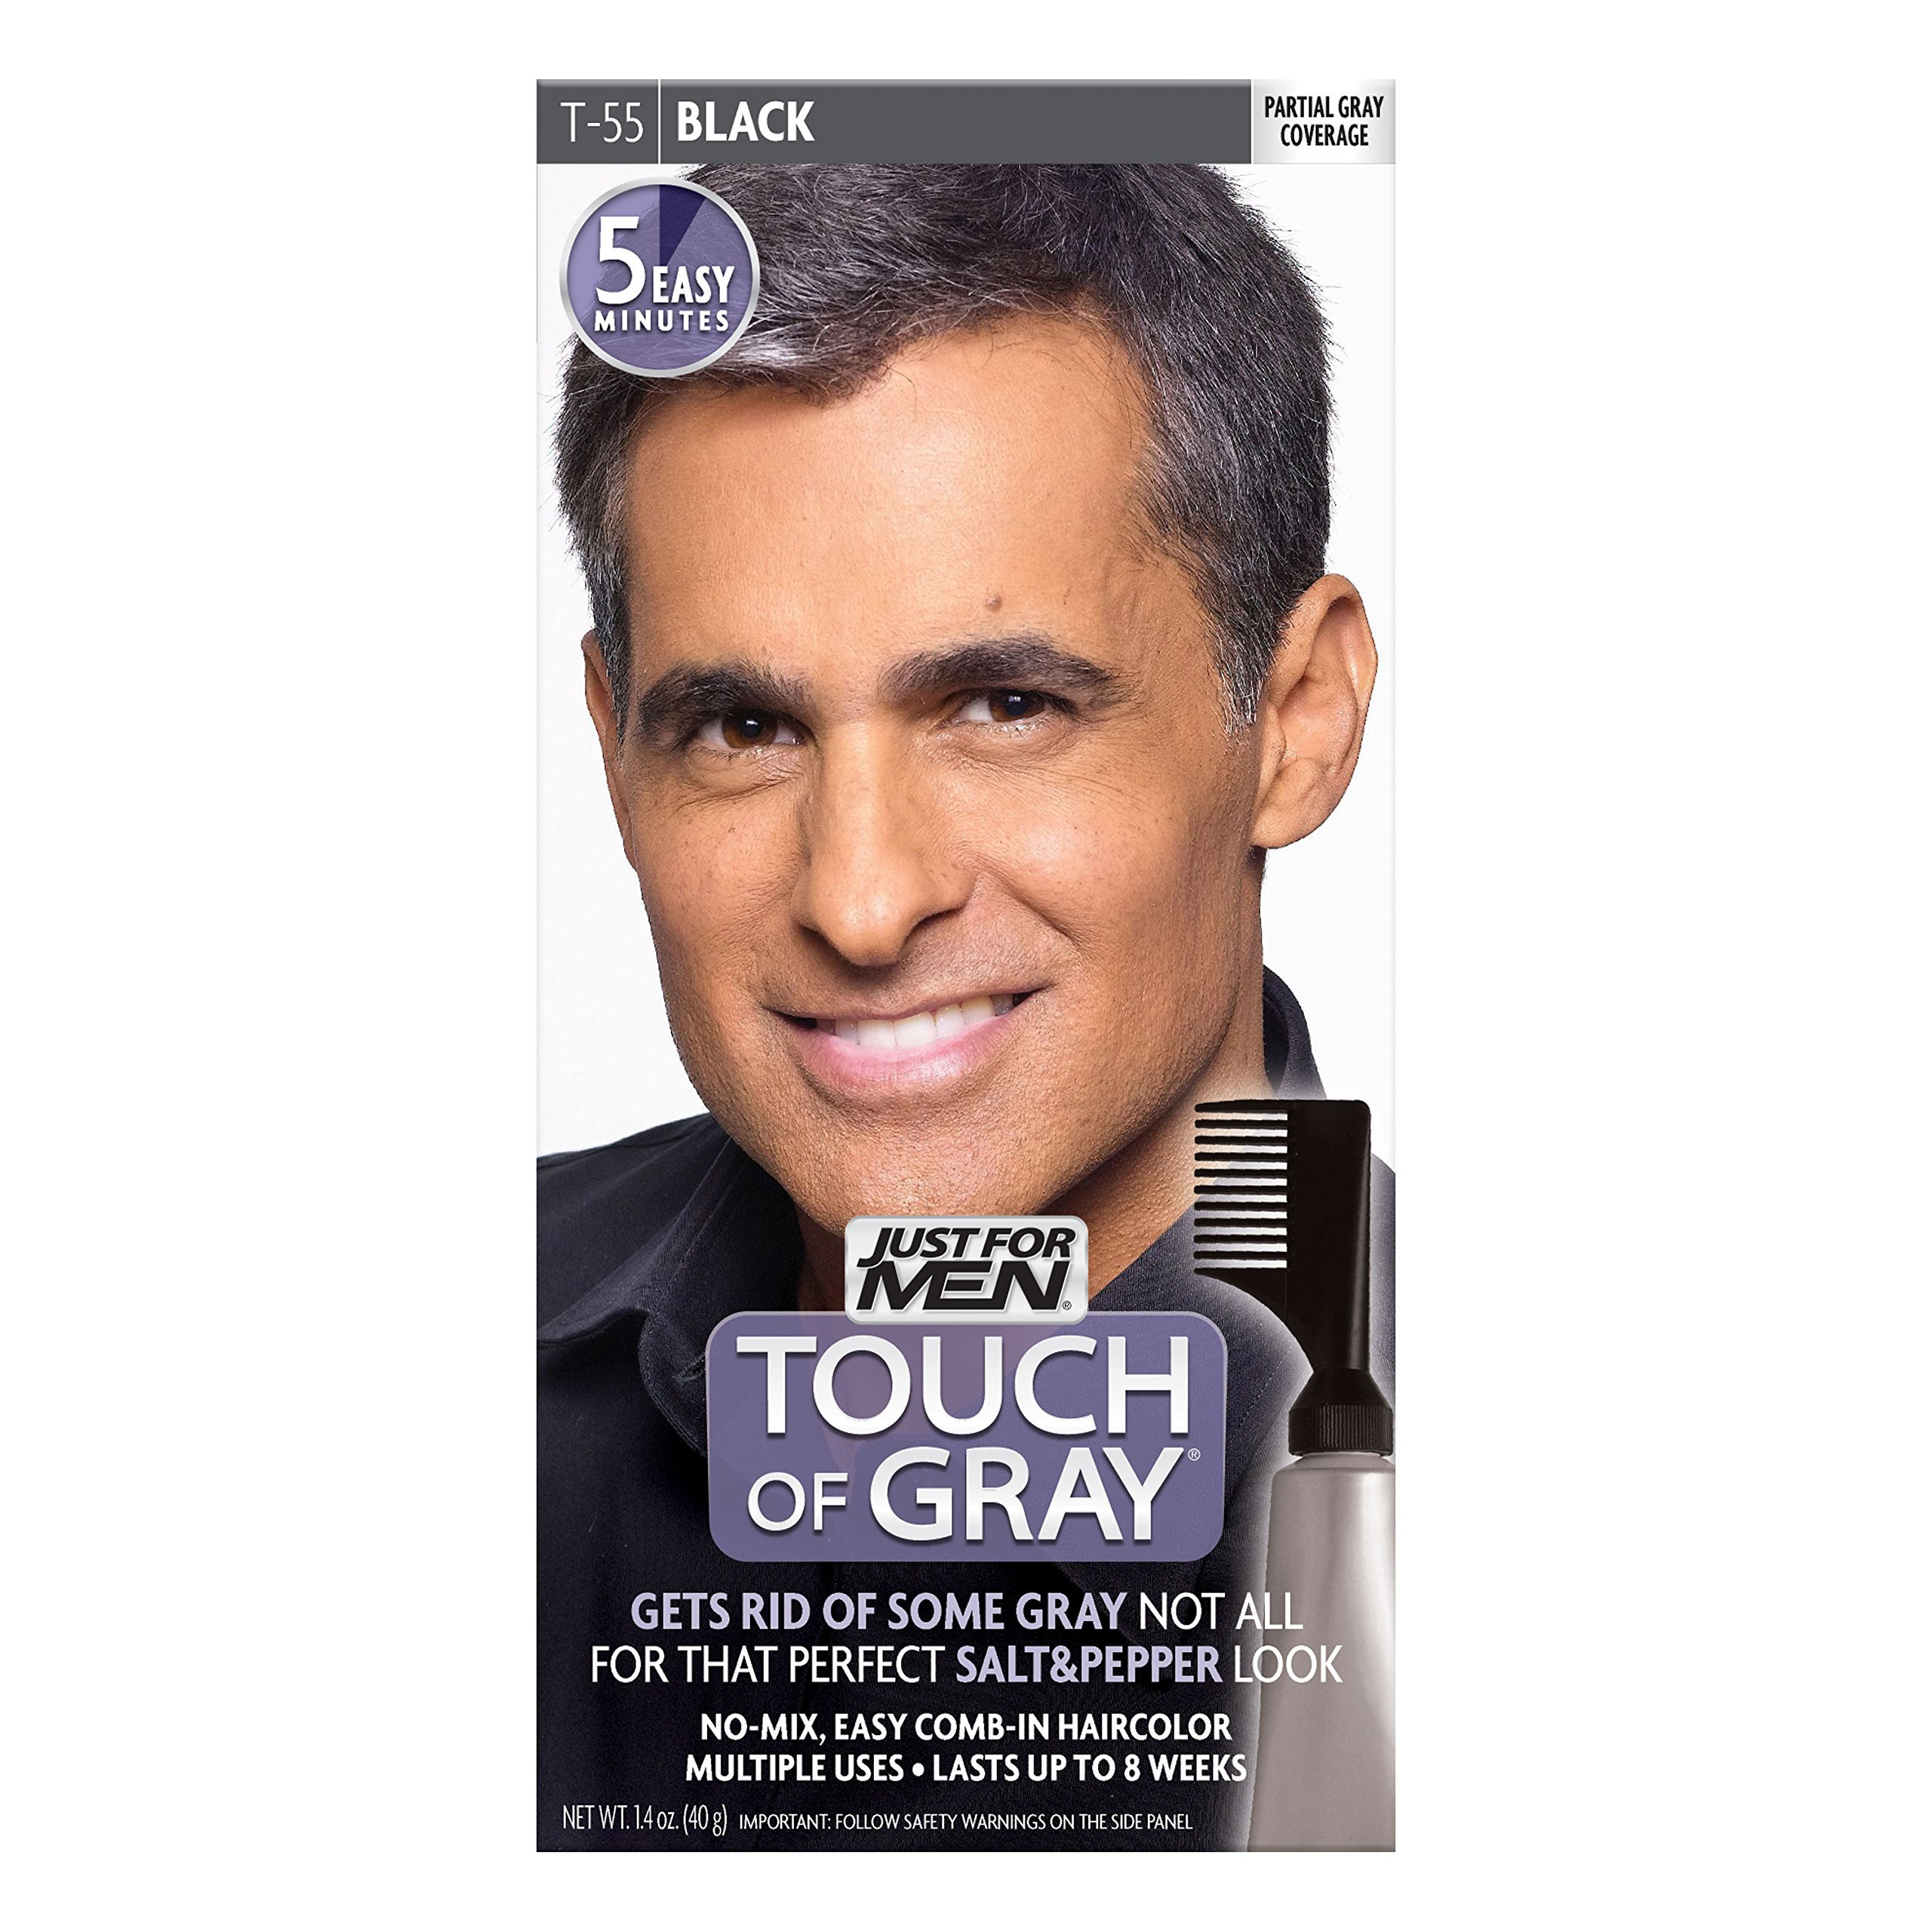 Amazon.com : Just For Men Touch Of Gray, Black, 1 Application (Pack ...